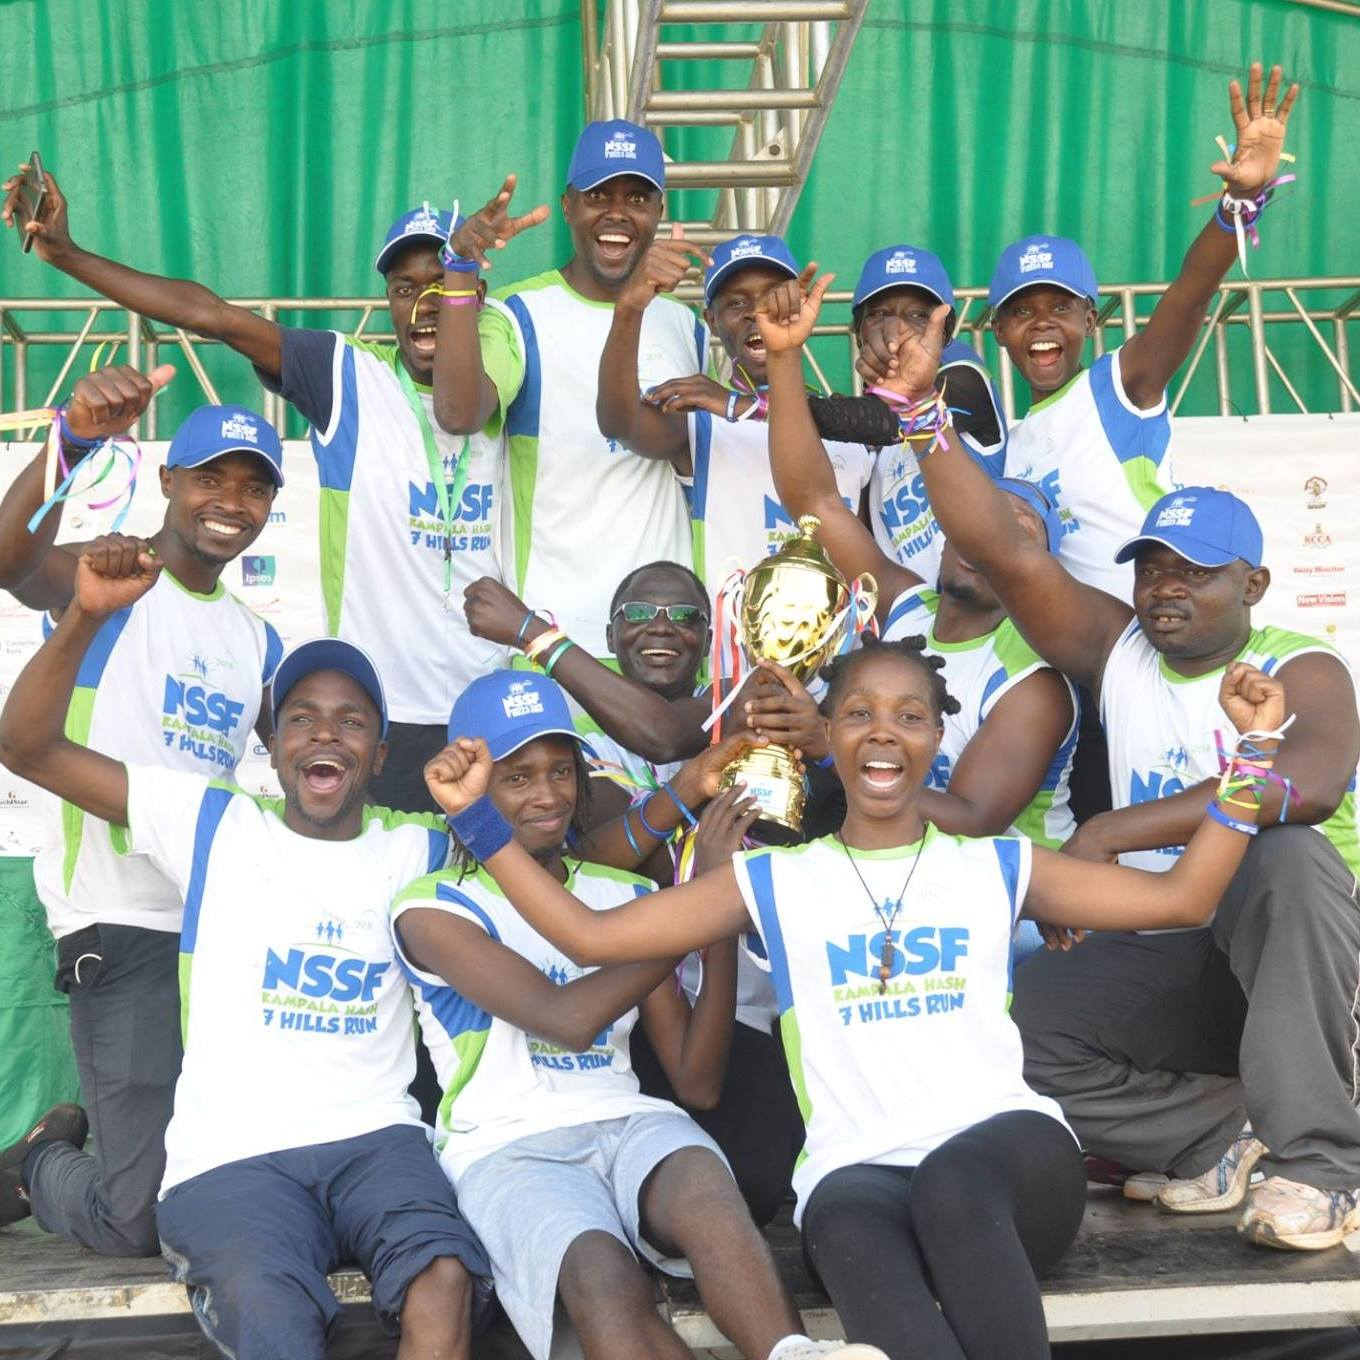 The writer third from left in the back row was part of the New Vision Kampala 2018 Seven Hills Marathon winning team